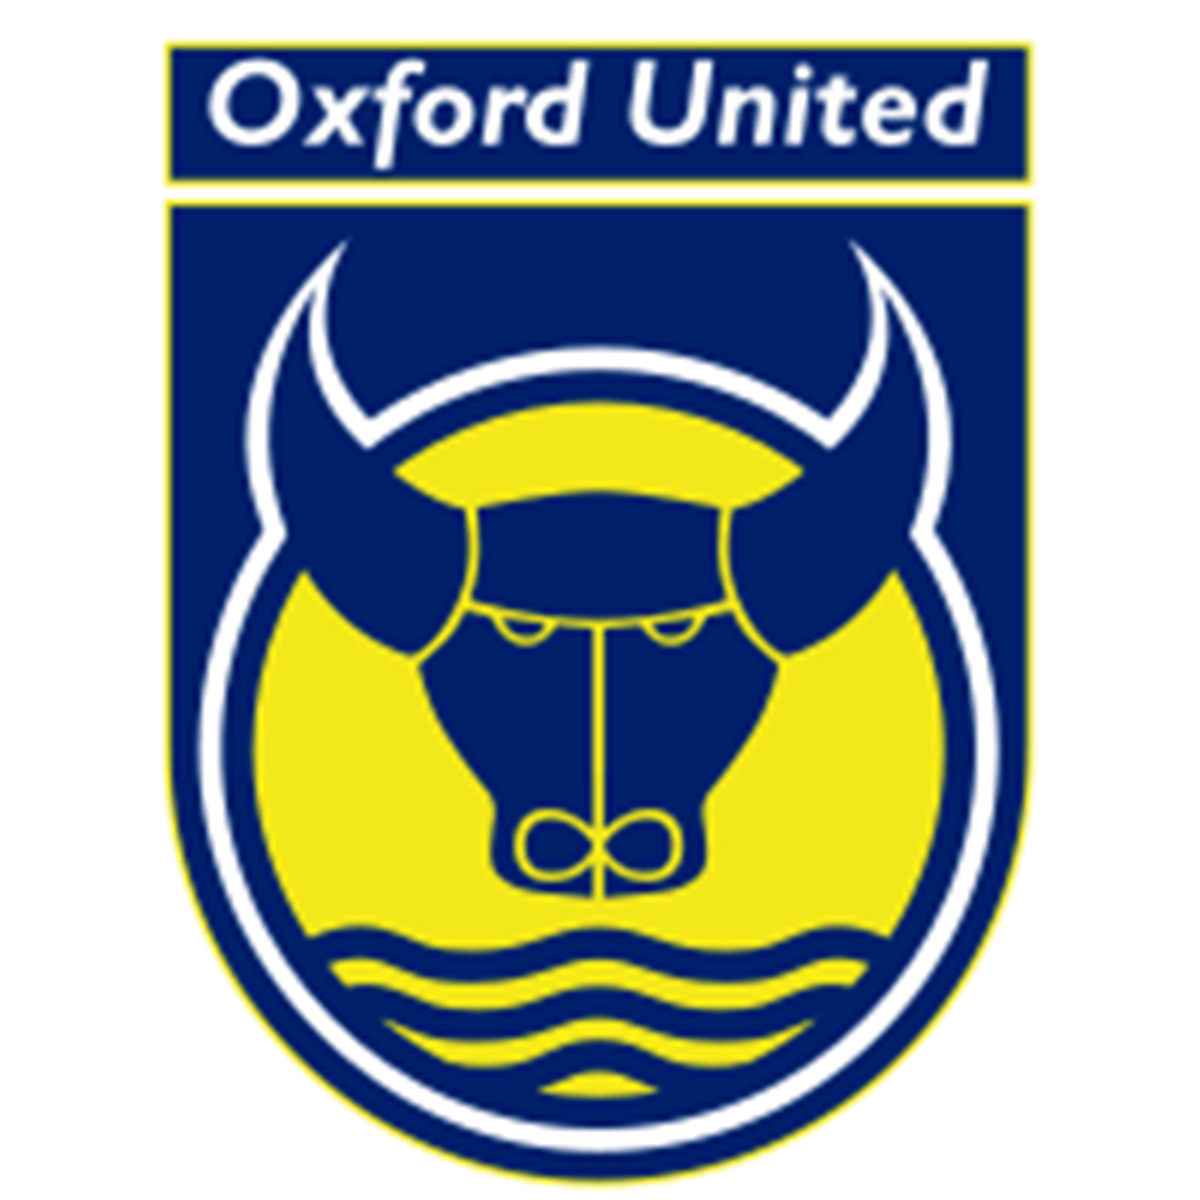 Oxford Utd 2 (Roofe 31, Hylton 45+8), Cambridge Utd 0